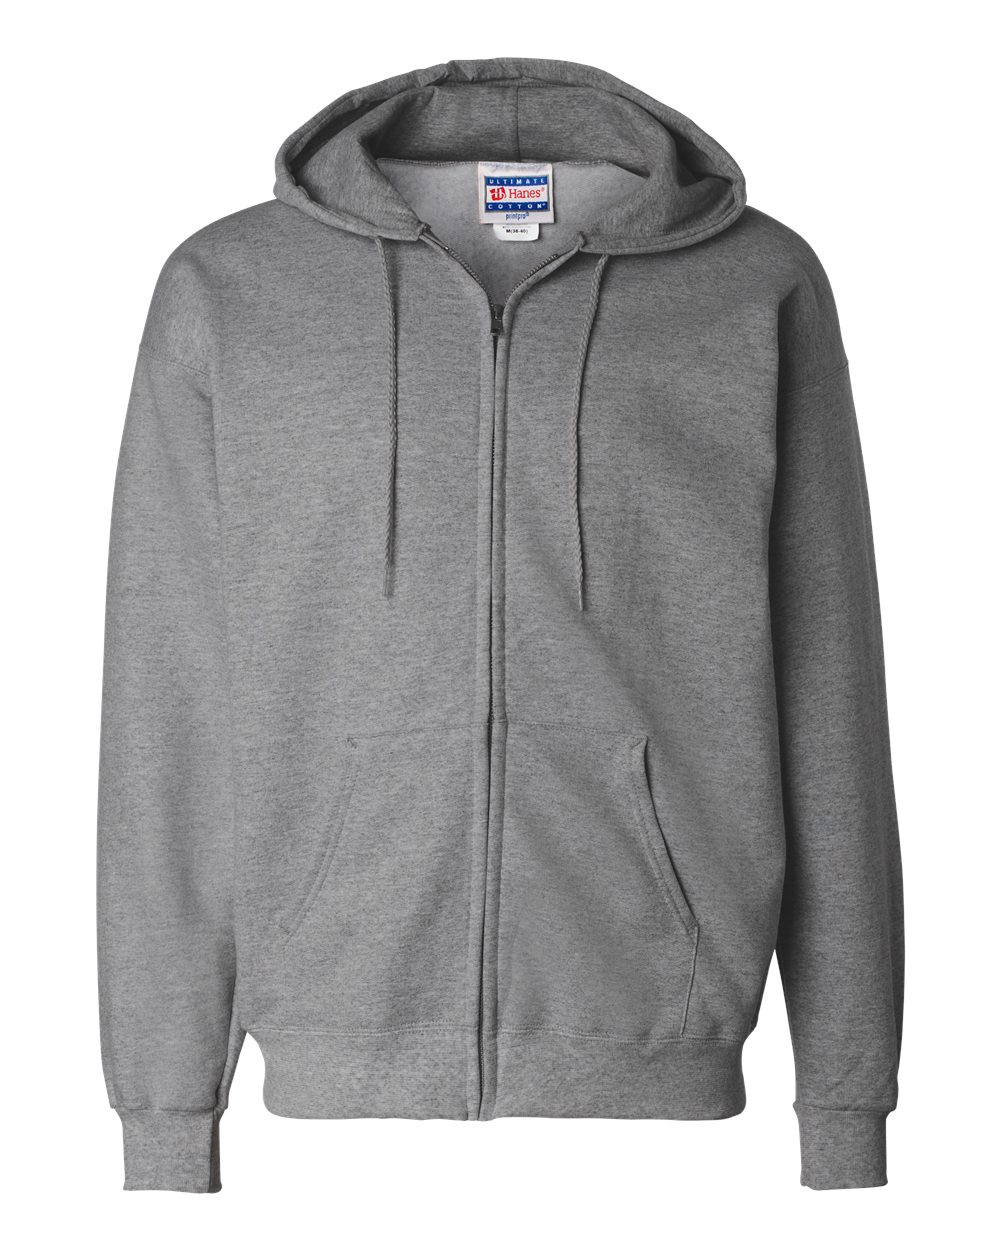 Hanes-Mens-Blank-Ultimate-Cotton-Full-Zip-Hooded-Sweatshirt-F280-up-to-3XL miniature 18